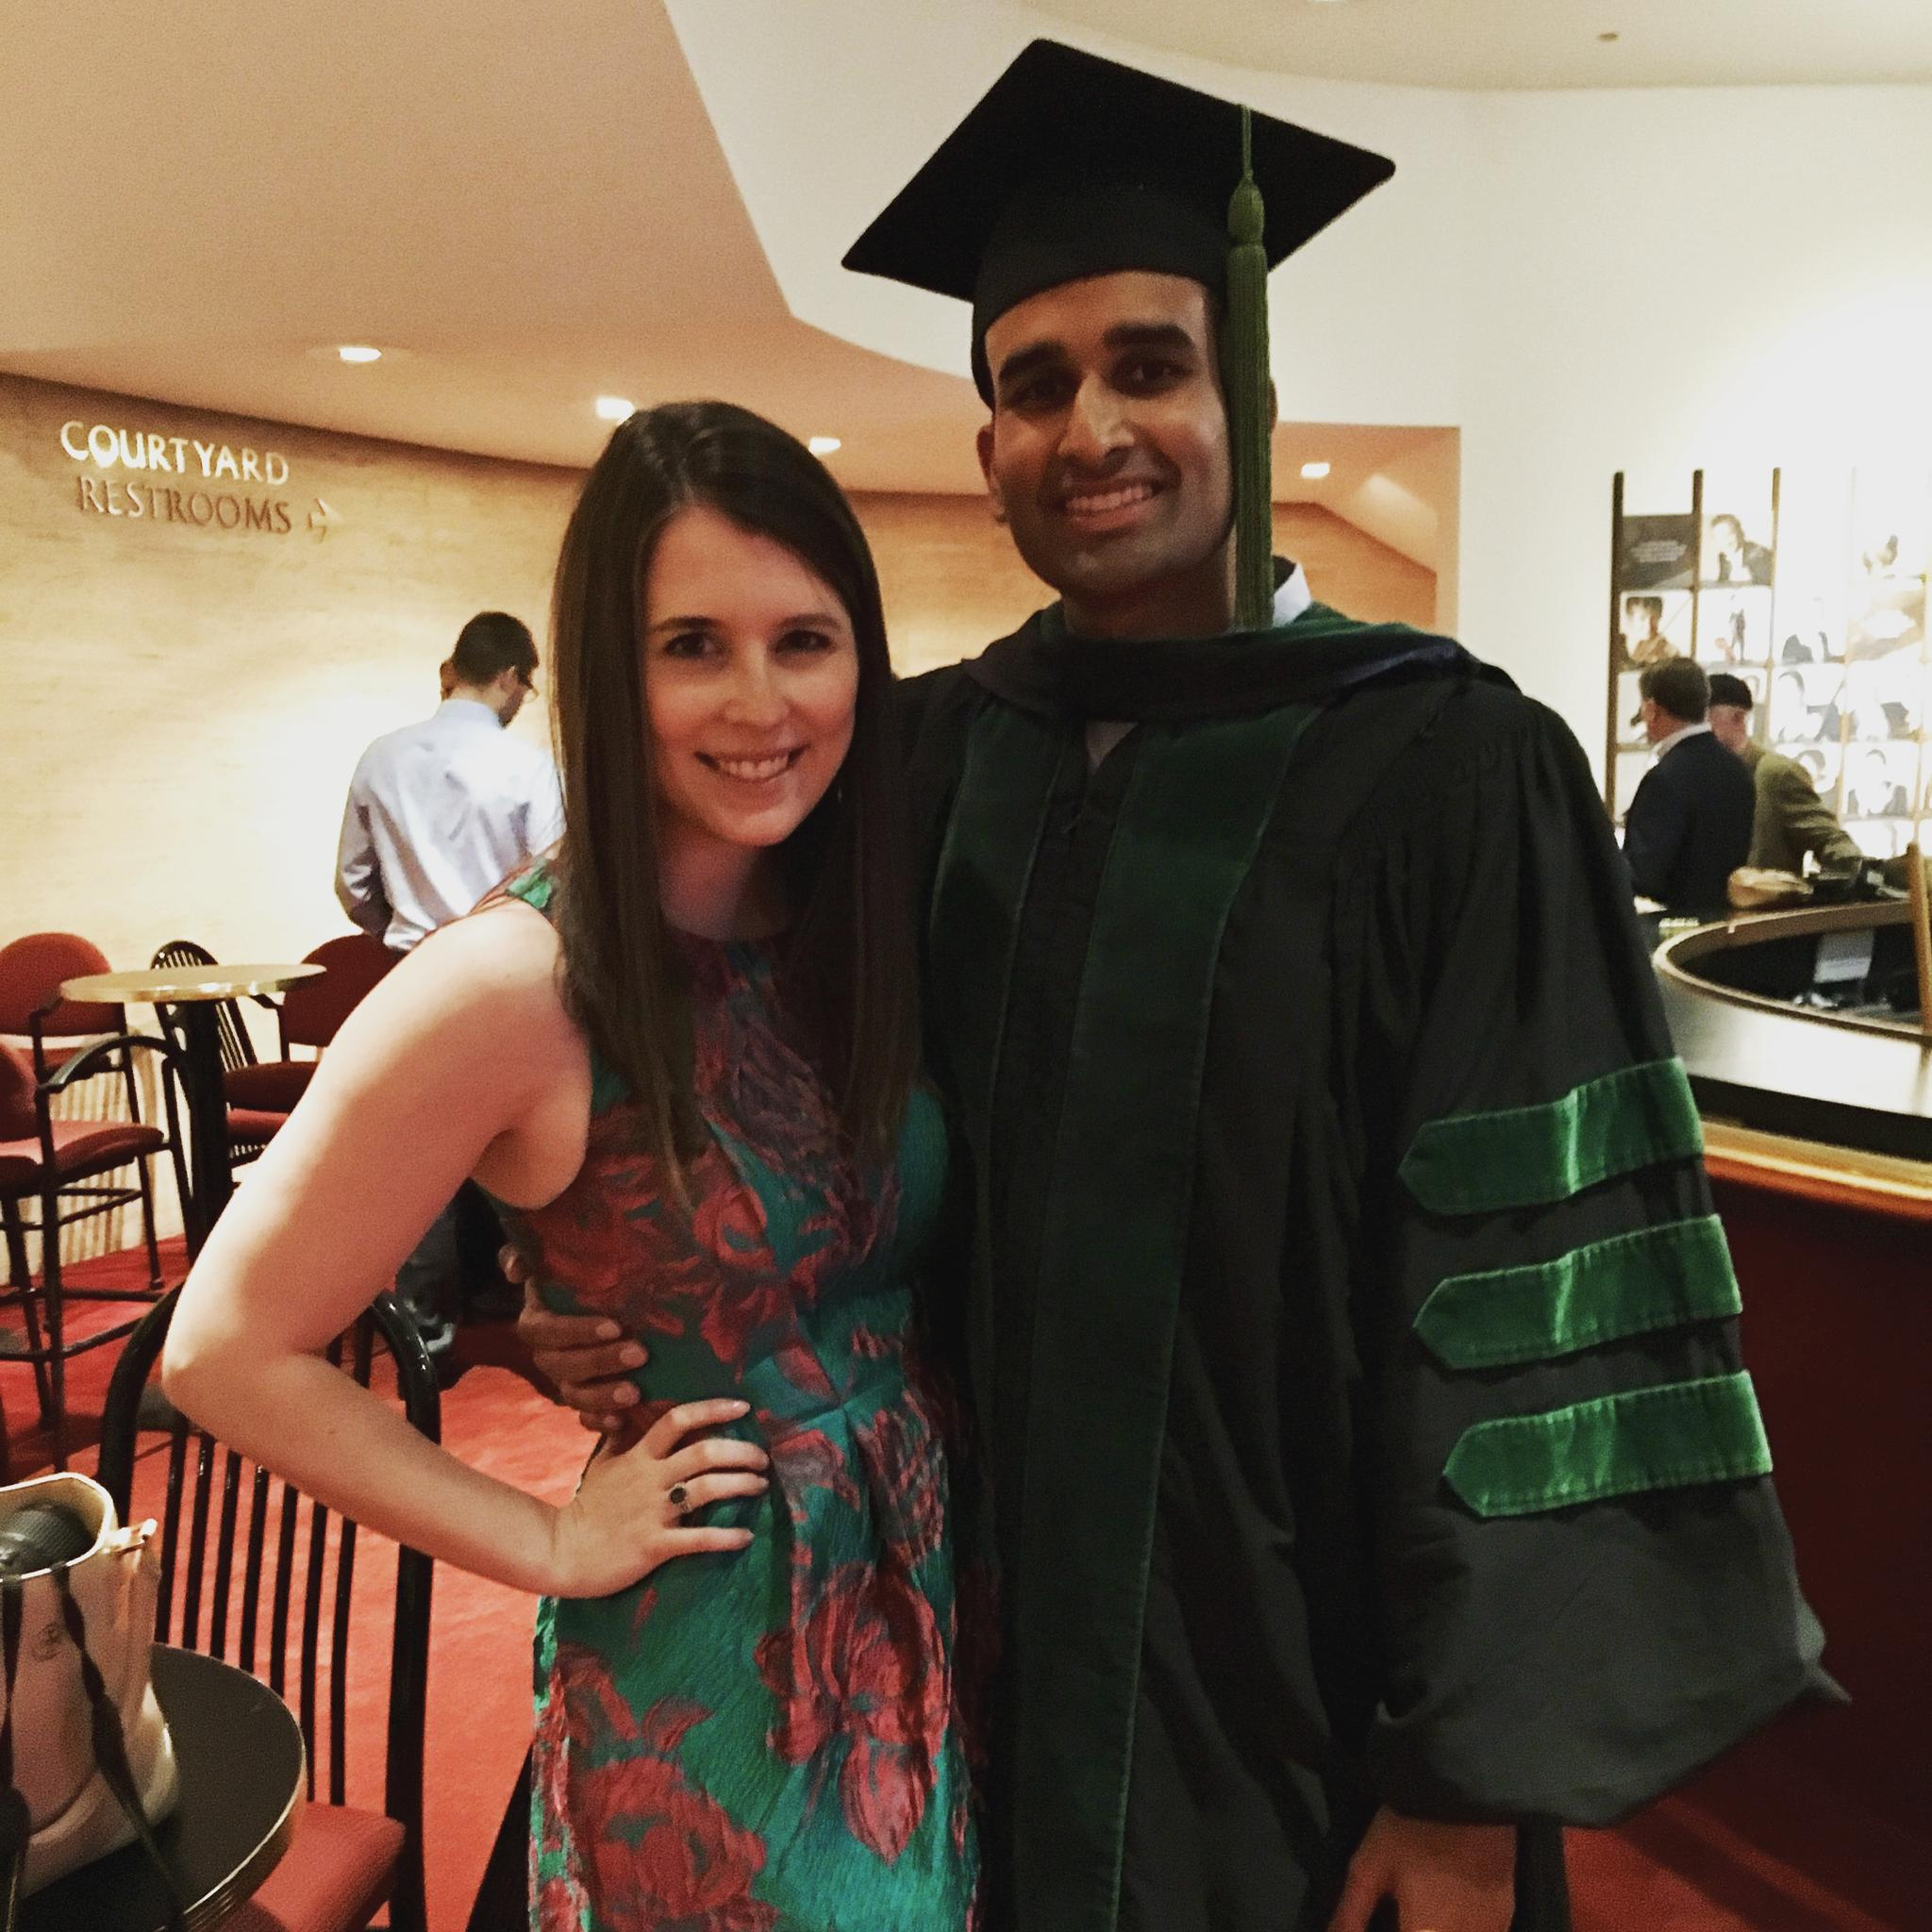 Celebrating Shawn's graduation from Baylor College of Medicine!